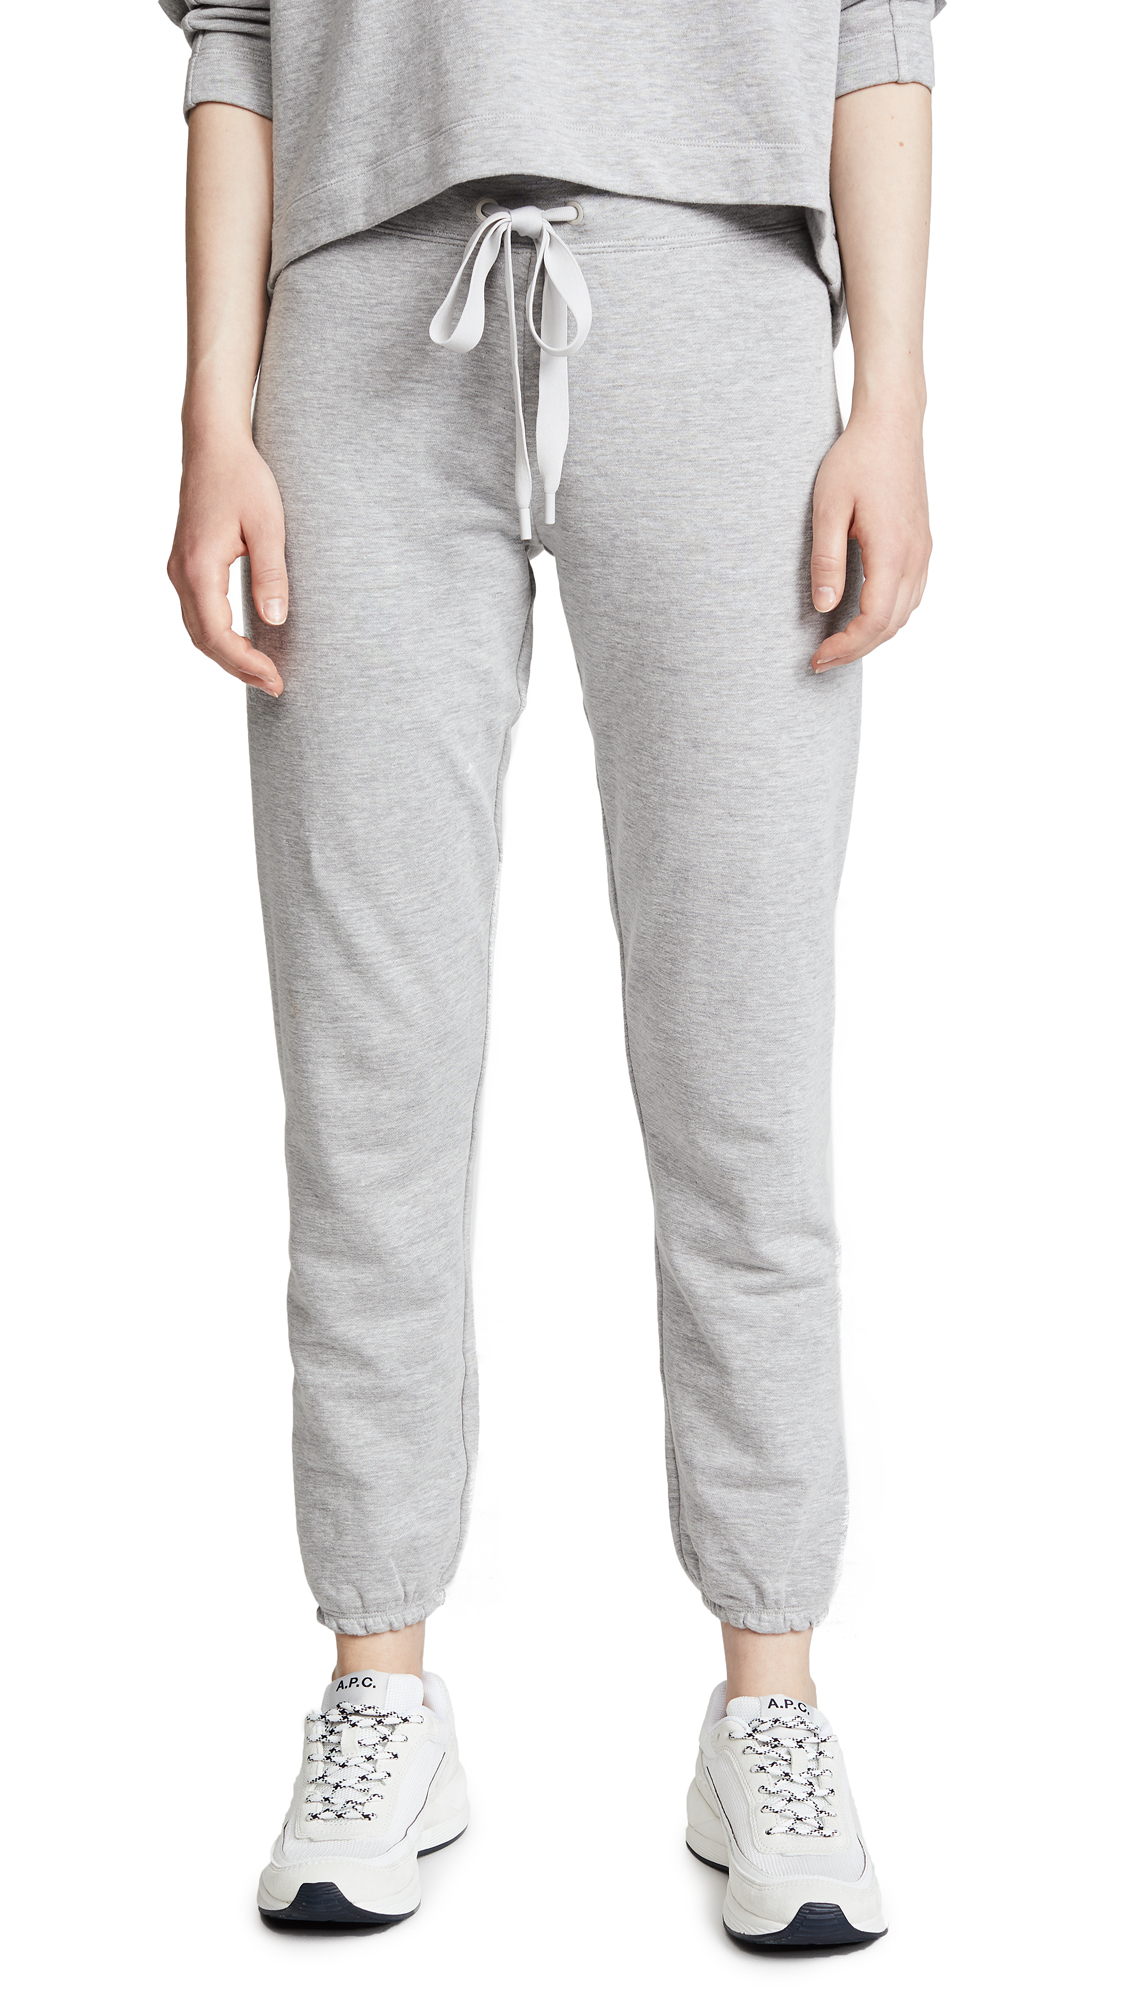 Theory Slim Sweatpants